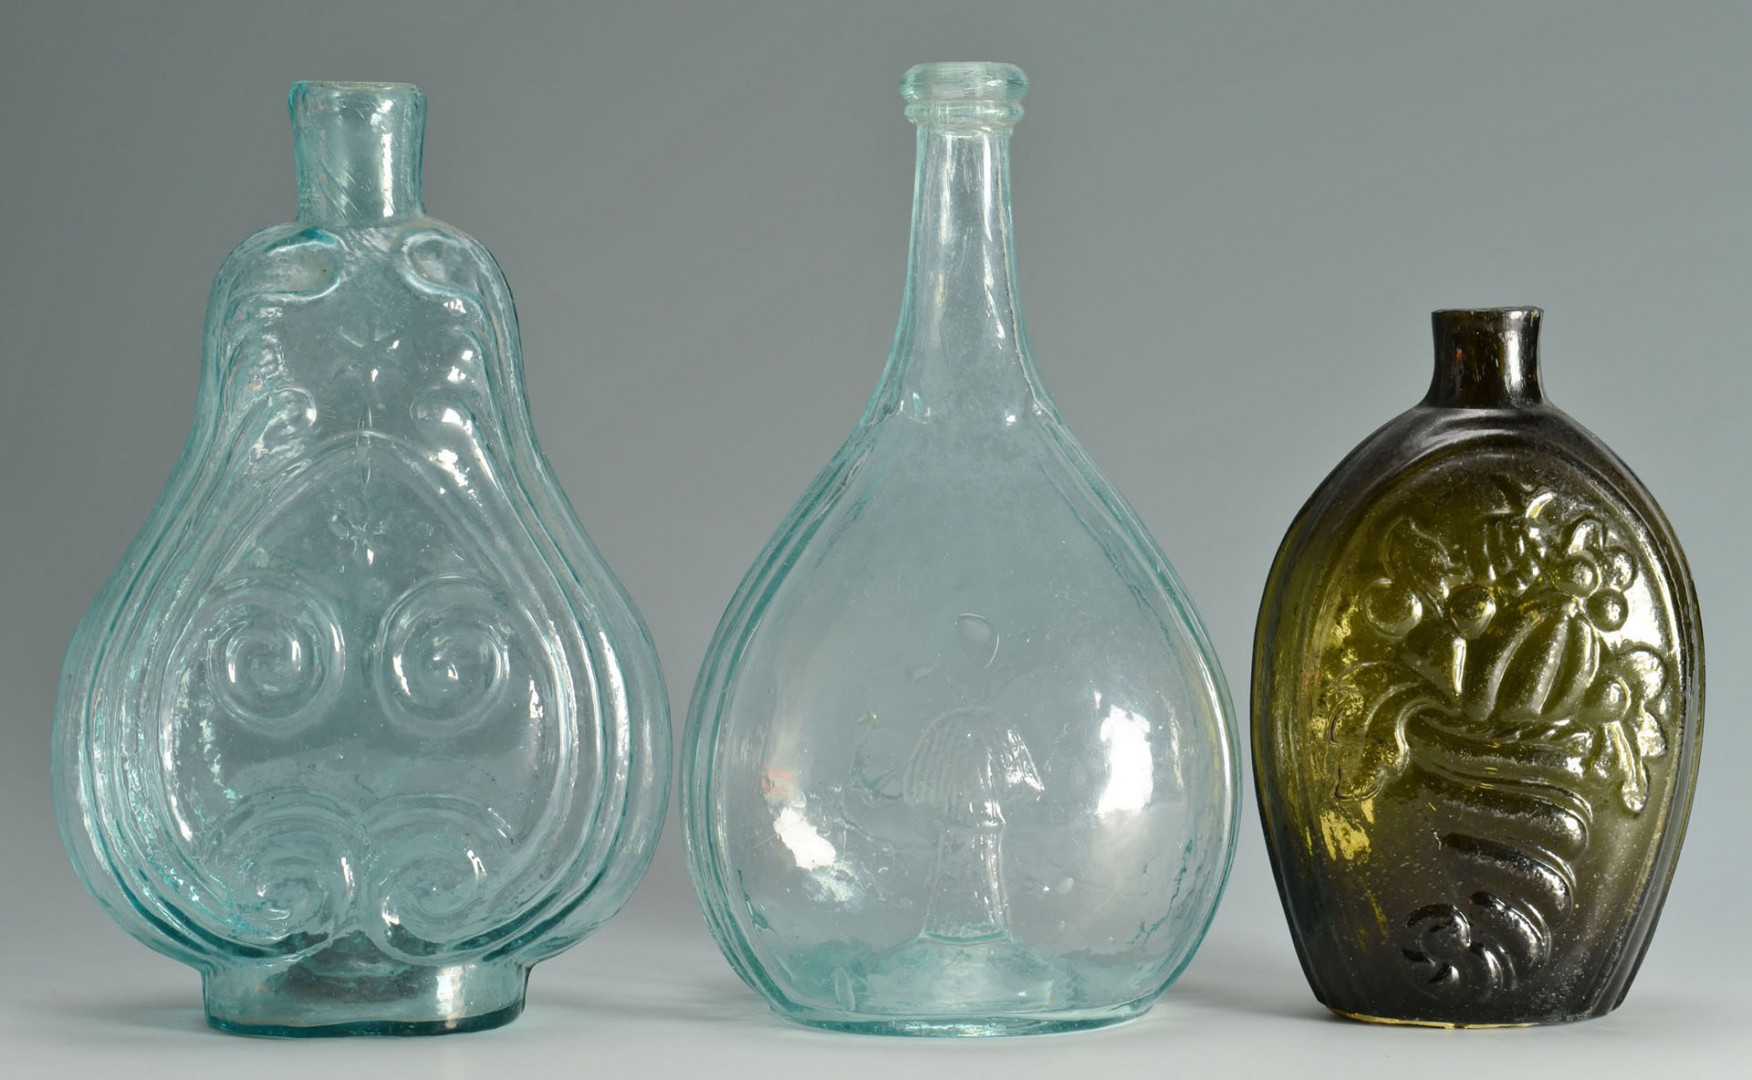 Lot 152: 3 Blown Mold Flasks with Various Designs